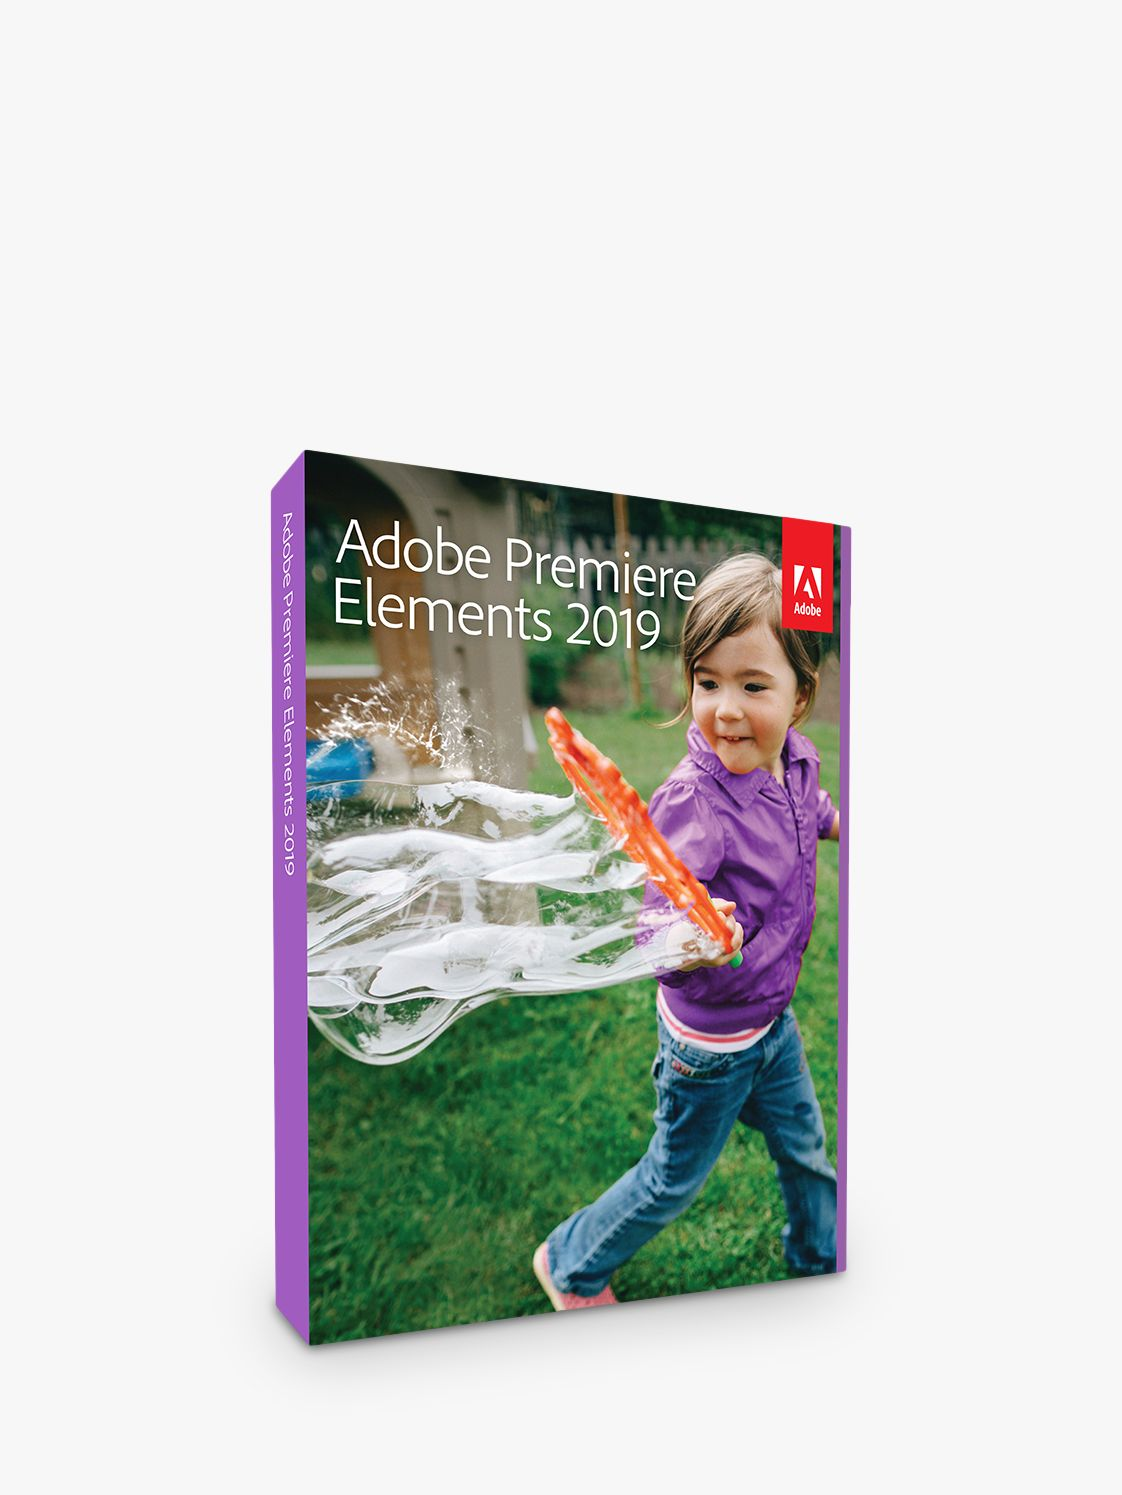 Adobe Adobe Premiere Elements 2019, Video Editing Software